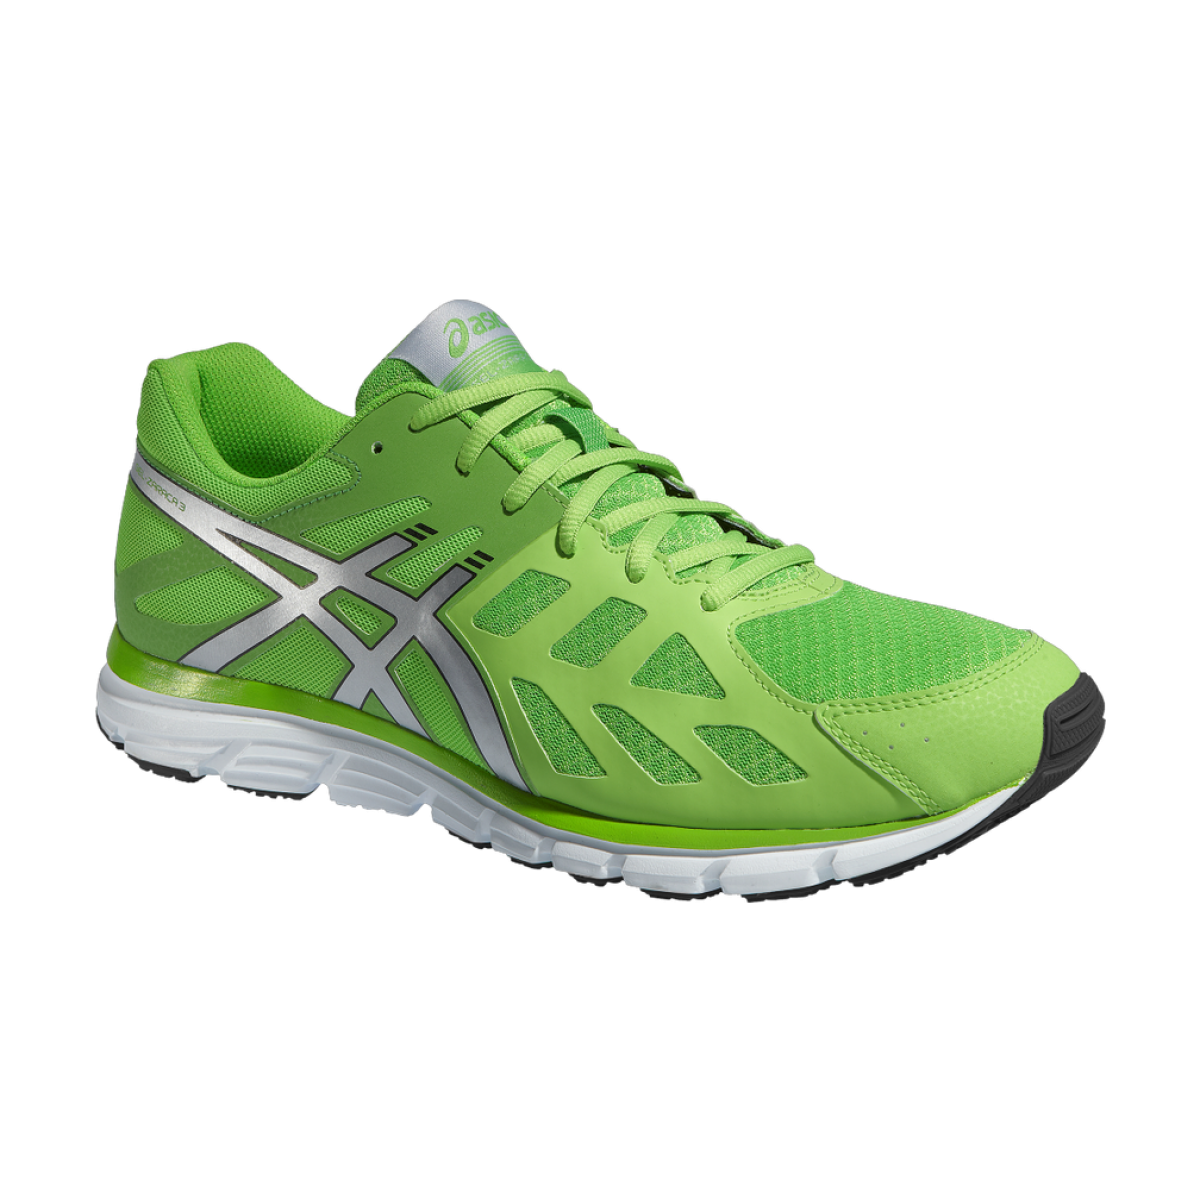 Running Shoes Png Image Shoes Running Shoes Running